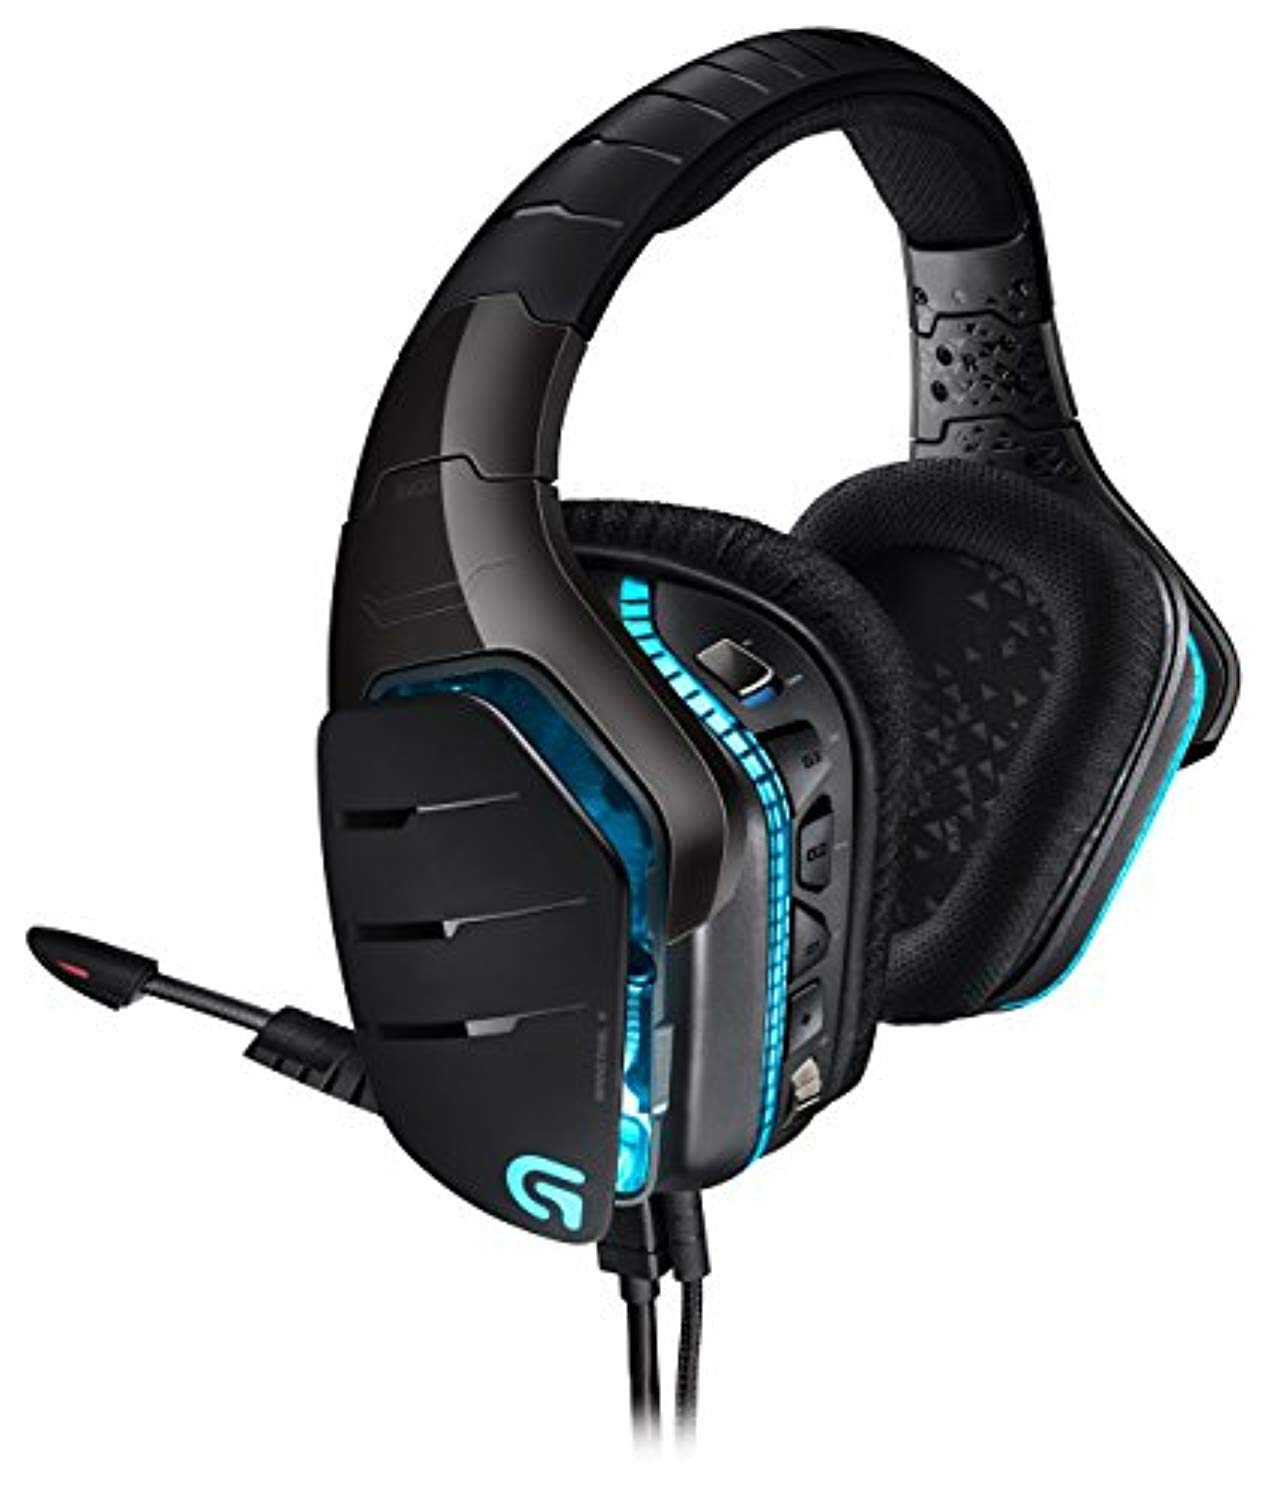 Logitech G633 Artemis Spectrum – RGB 7.1 Dolby and DST Headphone Surround Sound Gaming Headset – PC, PS4, Xbox One, Switch, and Mobile Compatible – Exceptional Audio Performance – Black